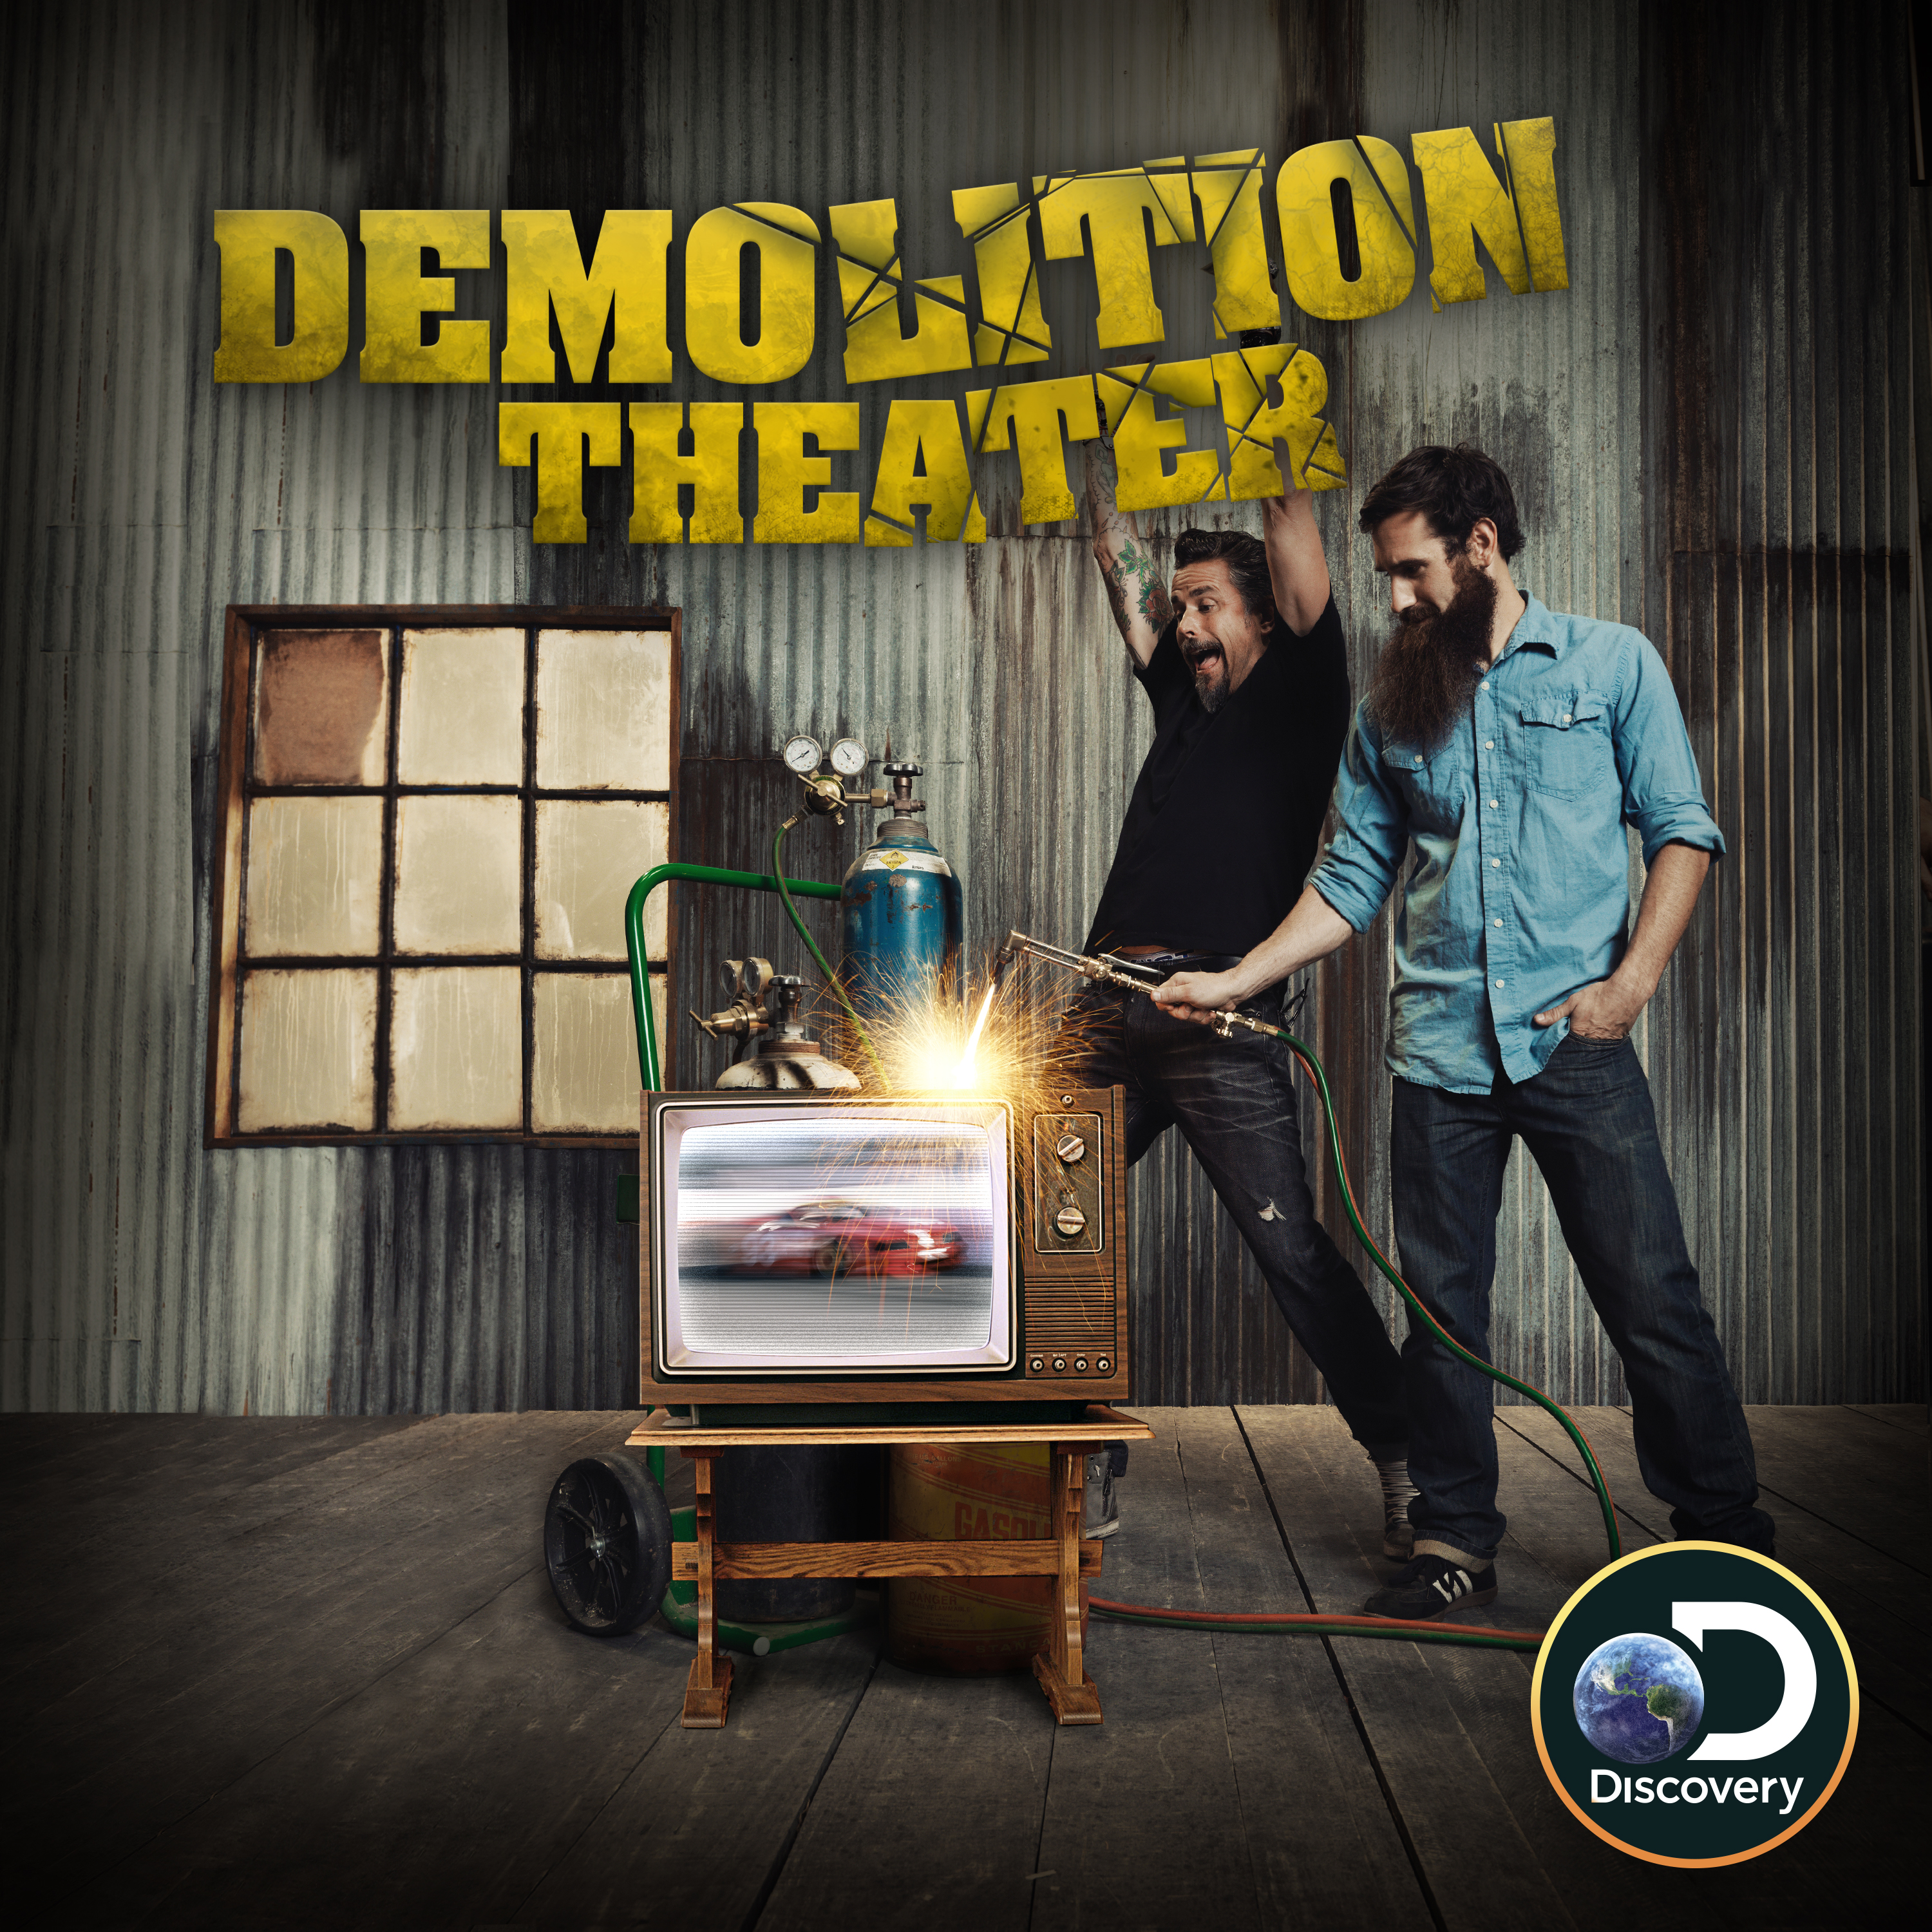 Fast N' Loud: Demolition Theater